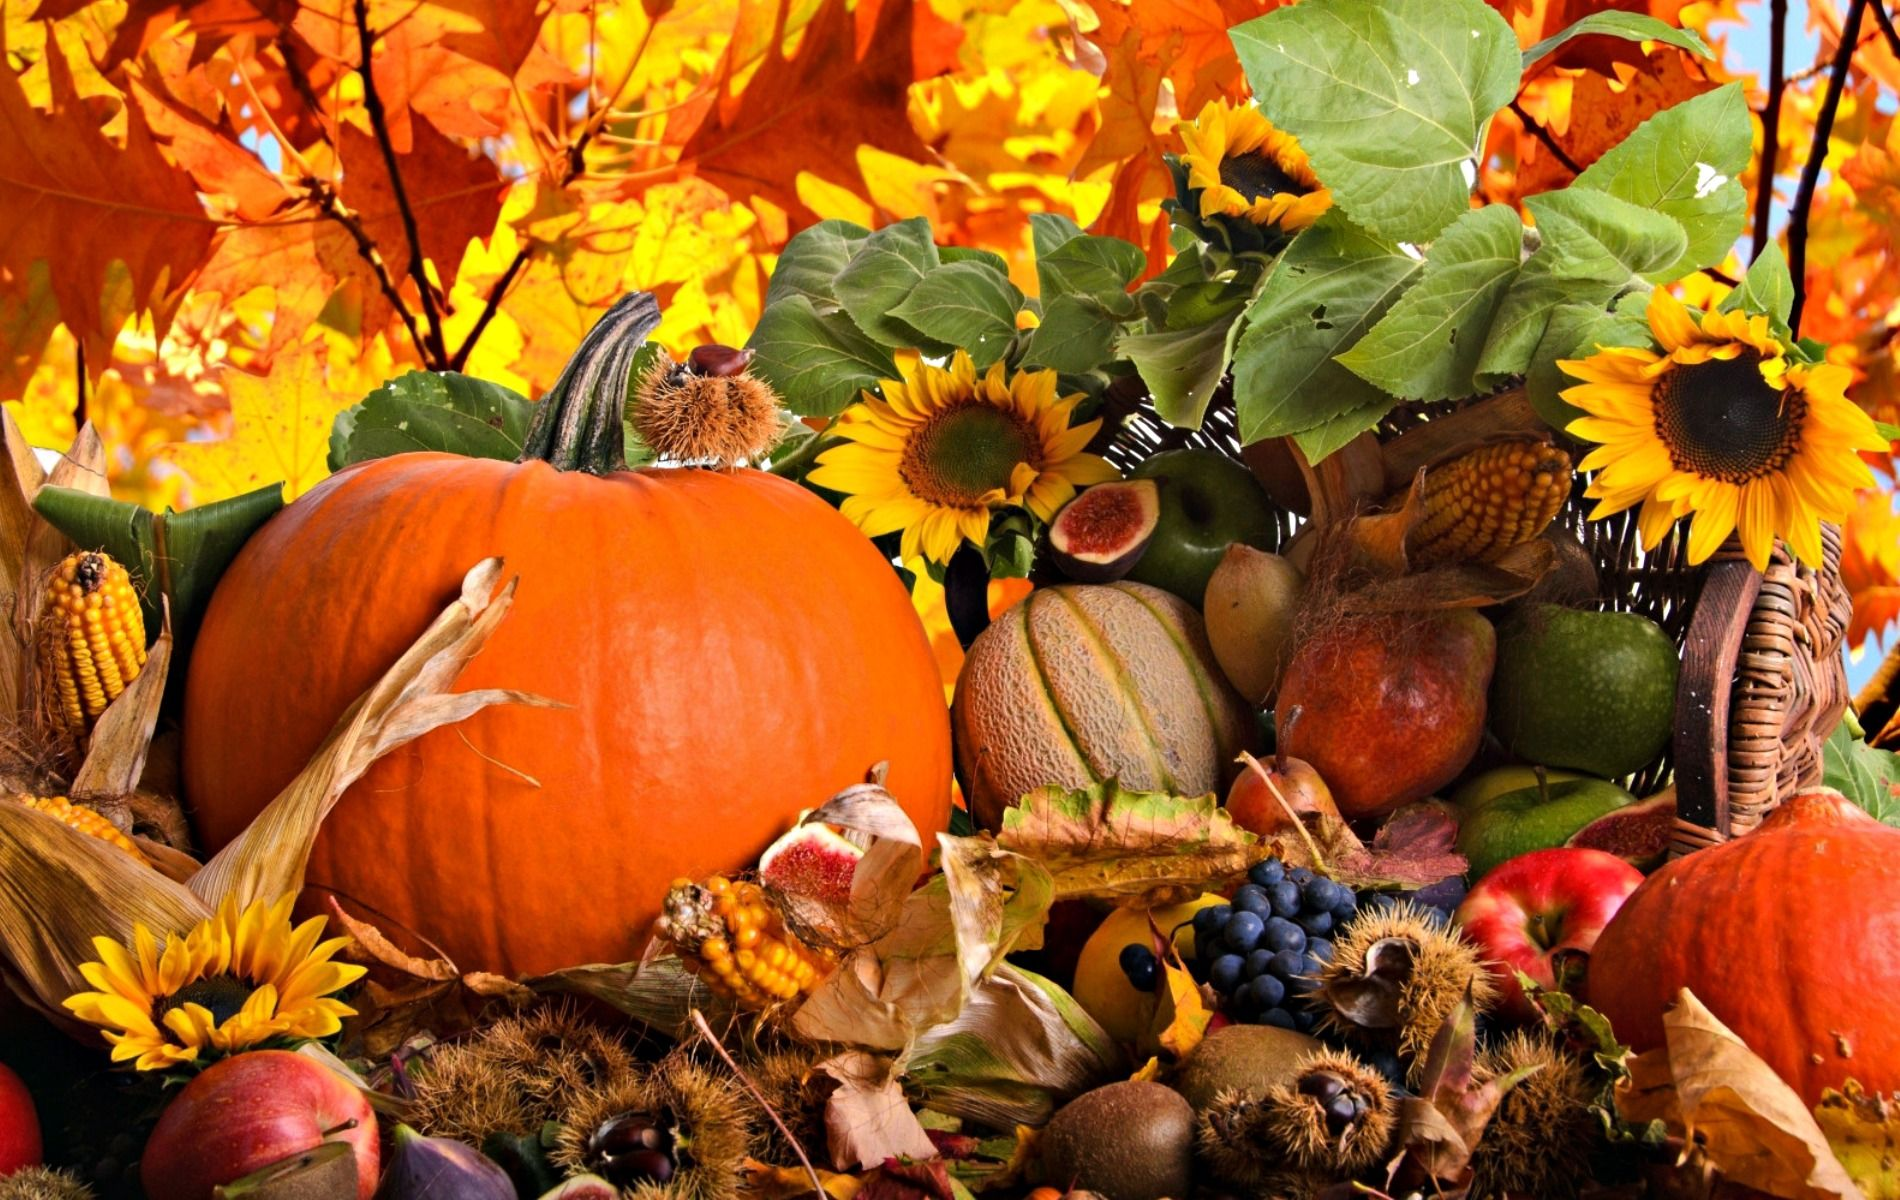 Fall Harvest Awesome Wallpapers 3779 Free fall wallpaper